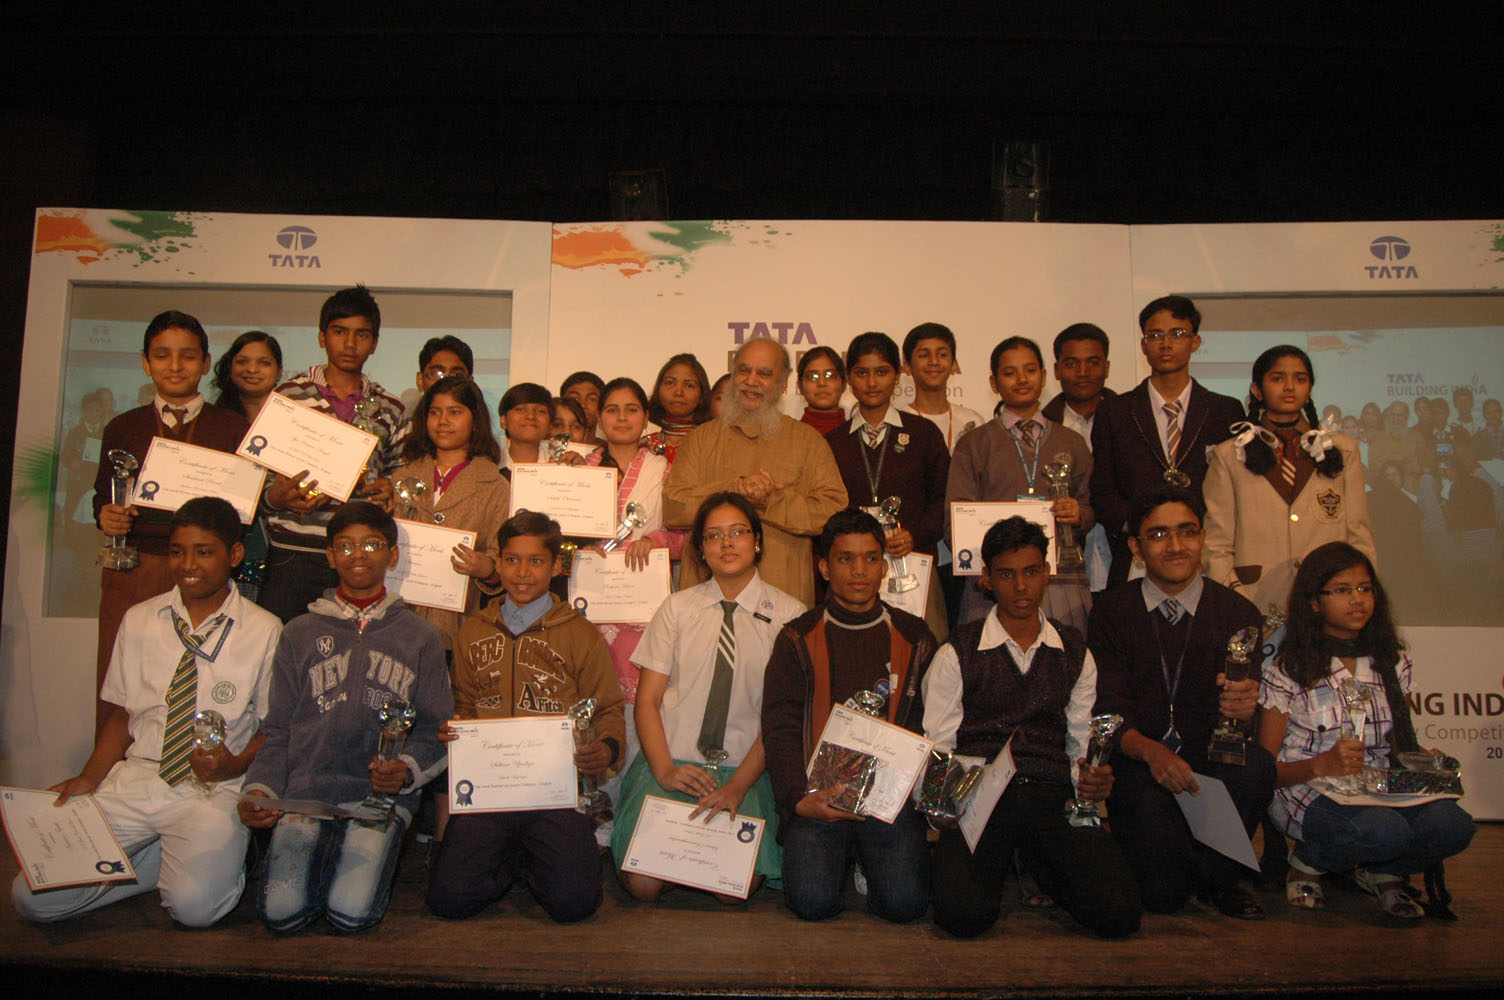 legal essay competition india 2010